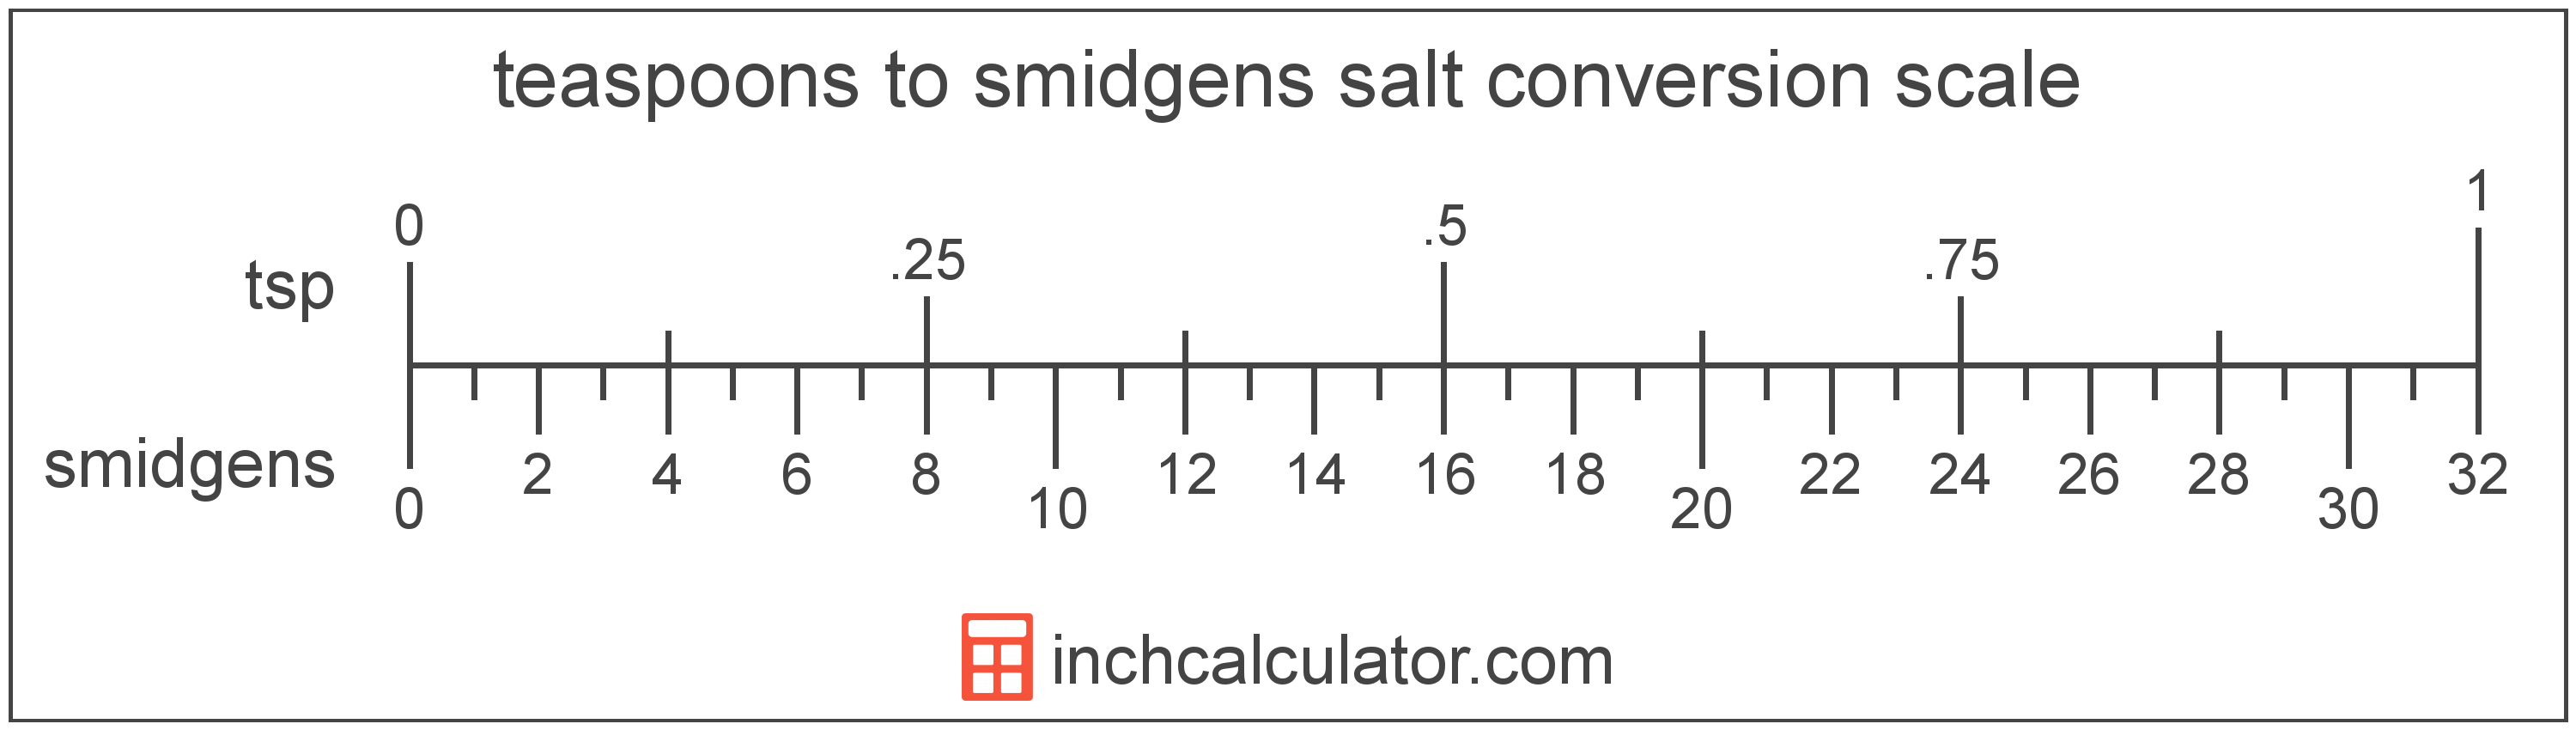 conversion scale showing teaspoons and equivalent smidgens salt volume values